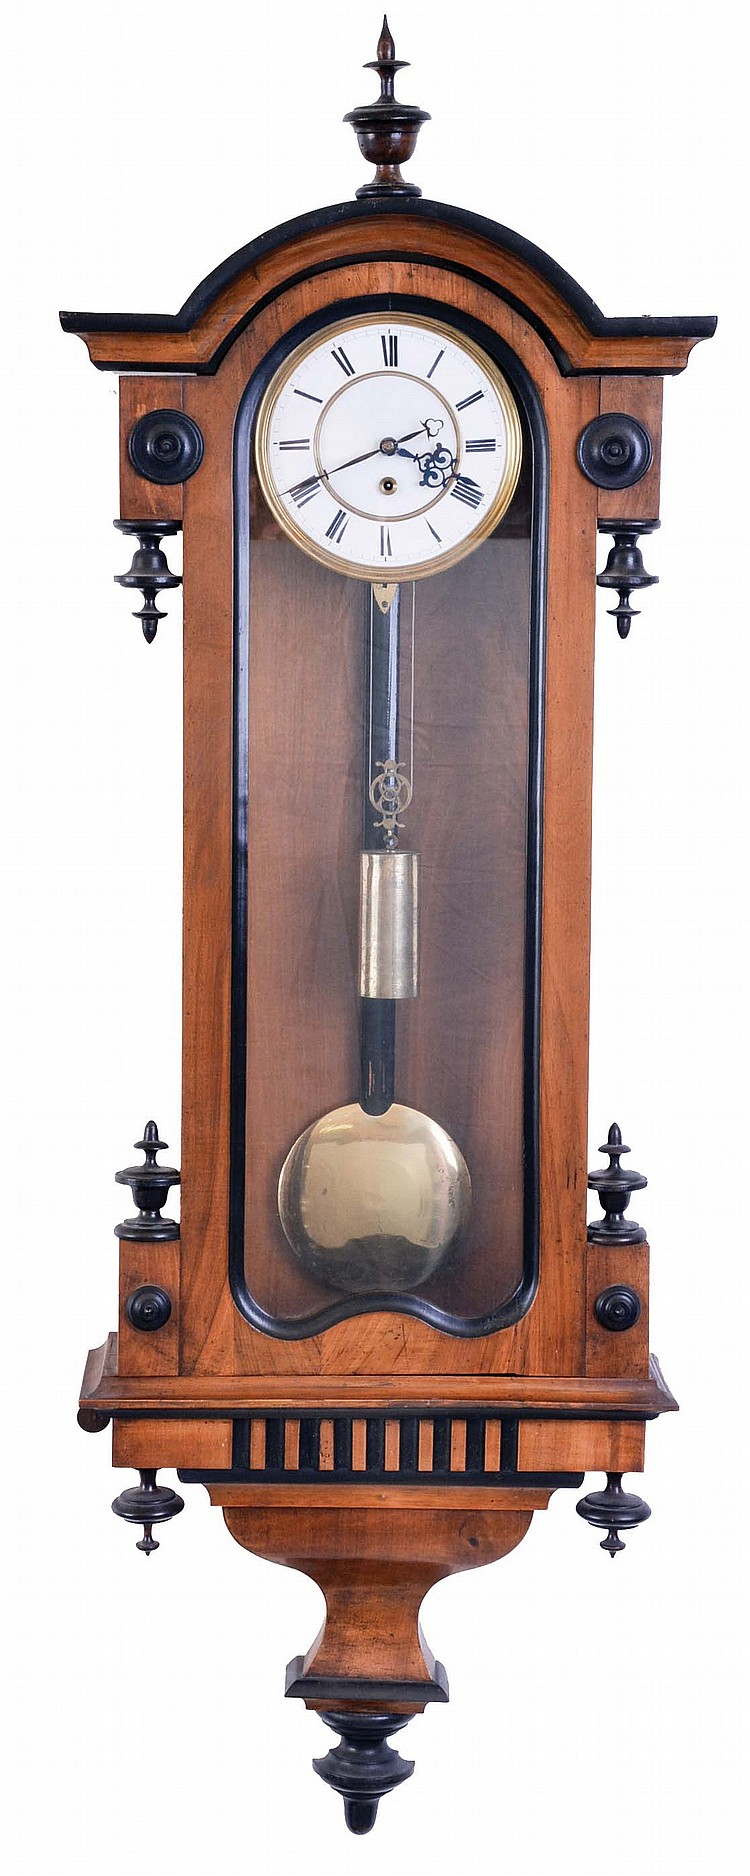 Austria, hanging regulator, walnut case with ebonized moldings, drops, and finial, Roman numeral, two piece white enamel dial, blued steel hands, 8 day timepiece movement with dead beat escapement, brass pendulum with wooden rod, and brass weight